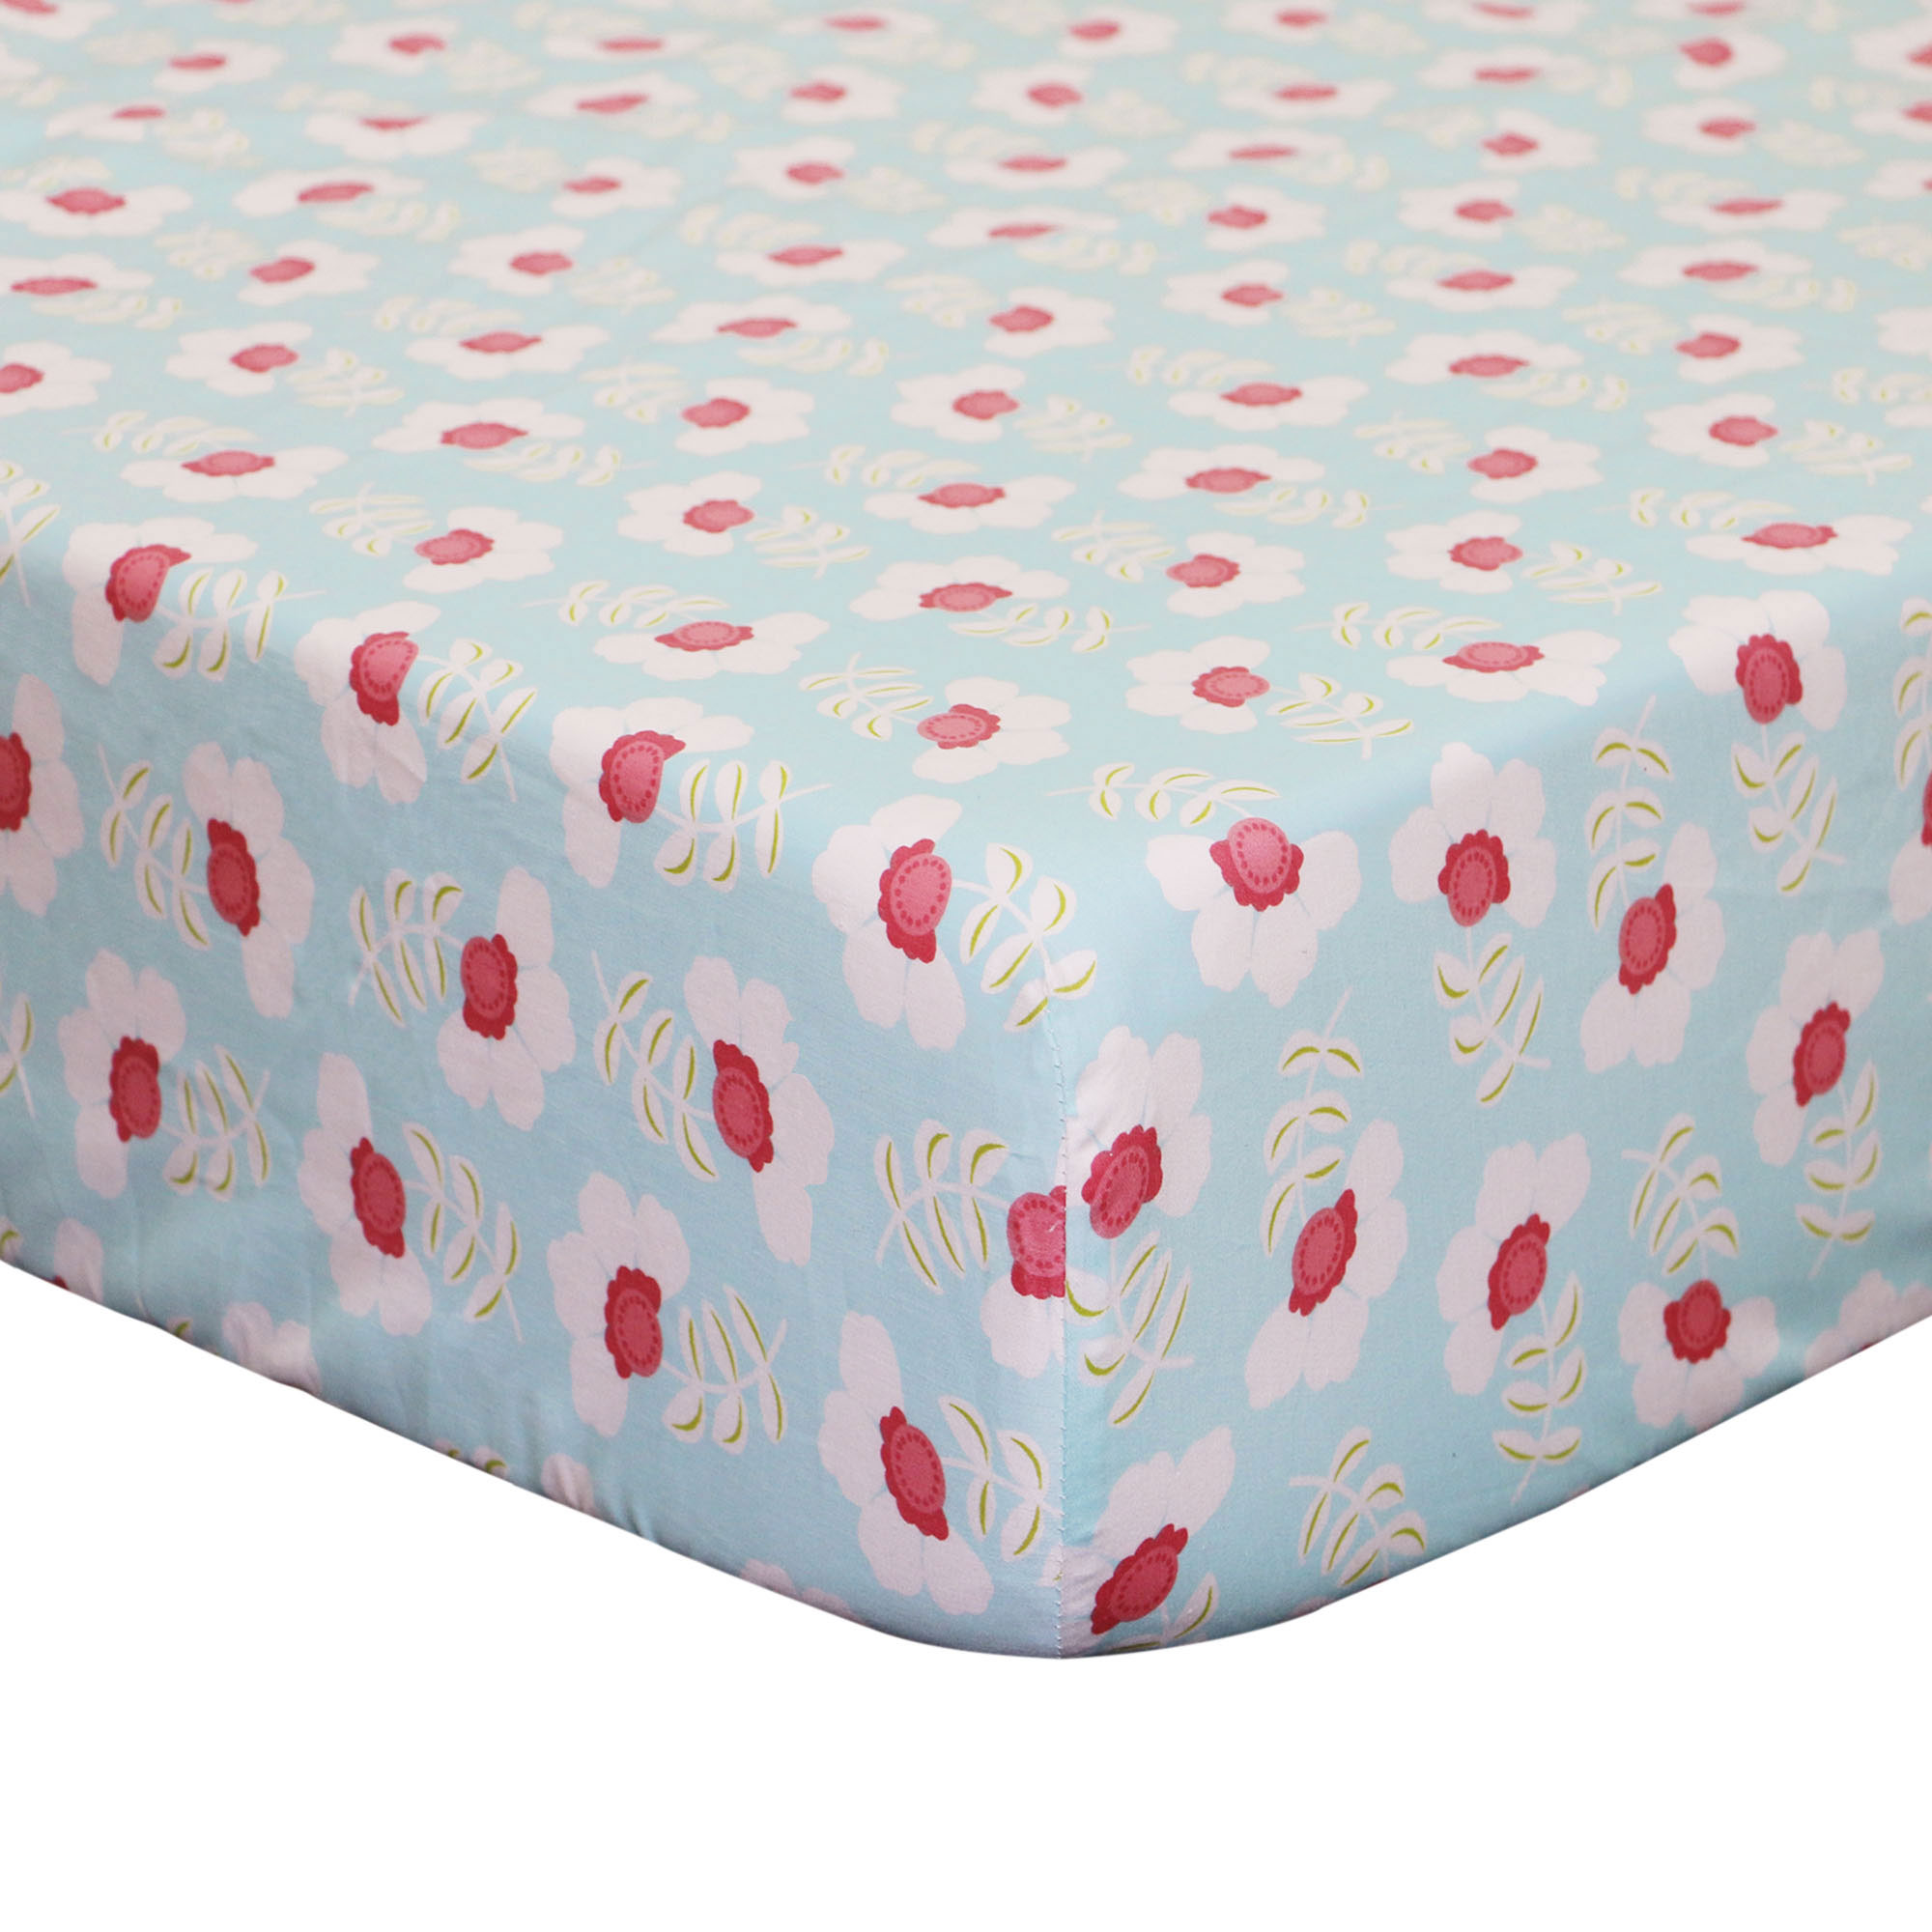 The Peanut Shell Baby Girl Crib Sheet - Coral and Aqua Floral Design - Mila Fitted Crib Sheet